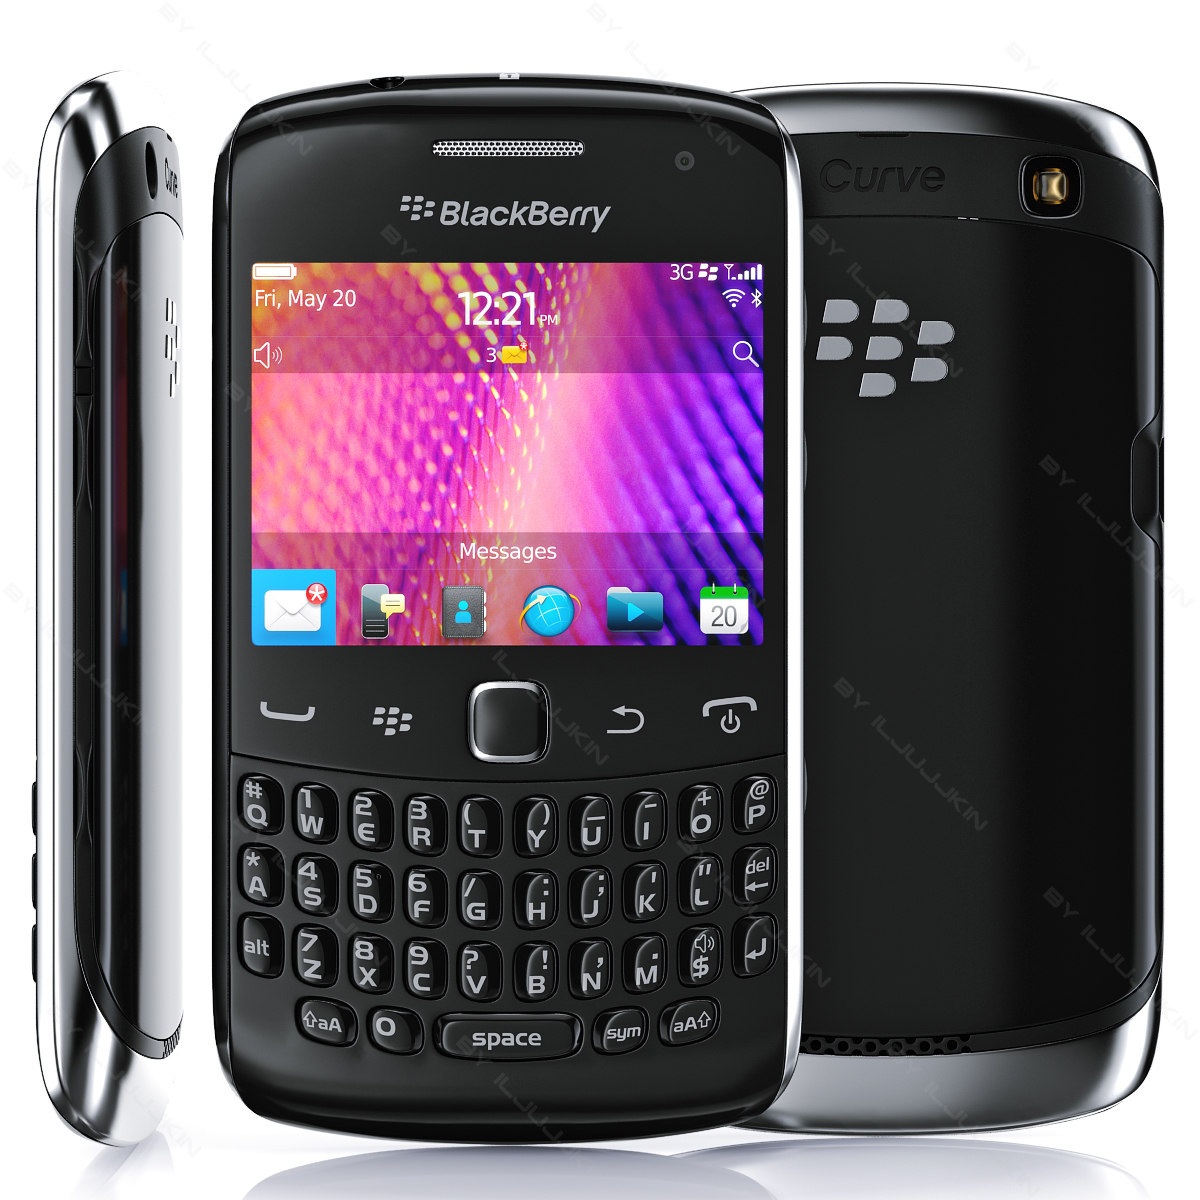 BlackBerry_Curve _9350_01.jpg